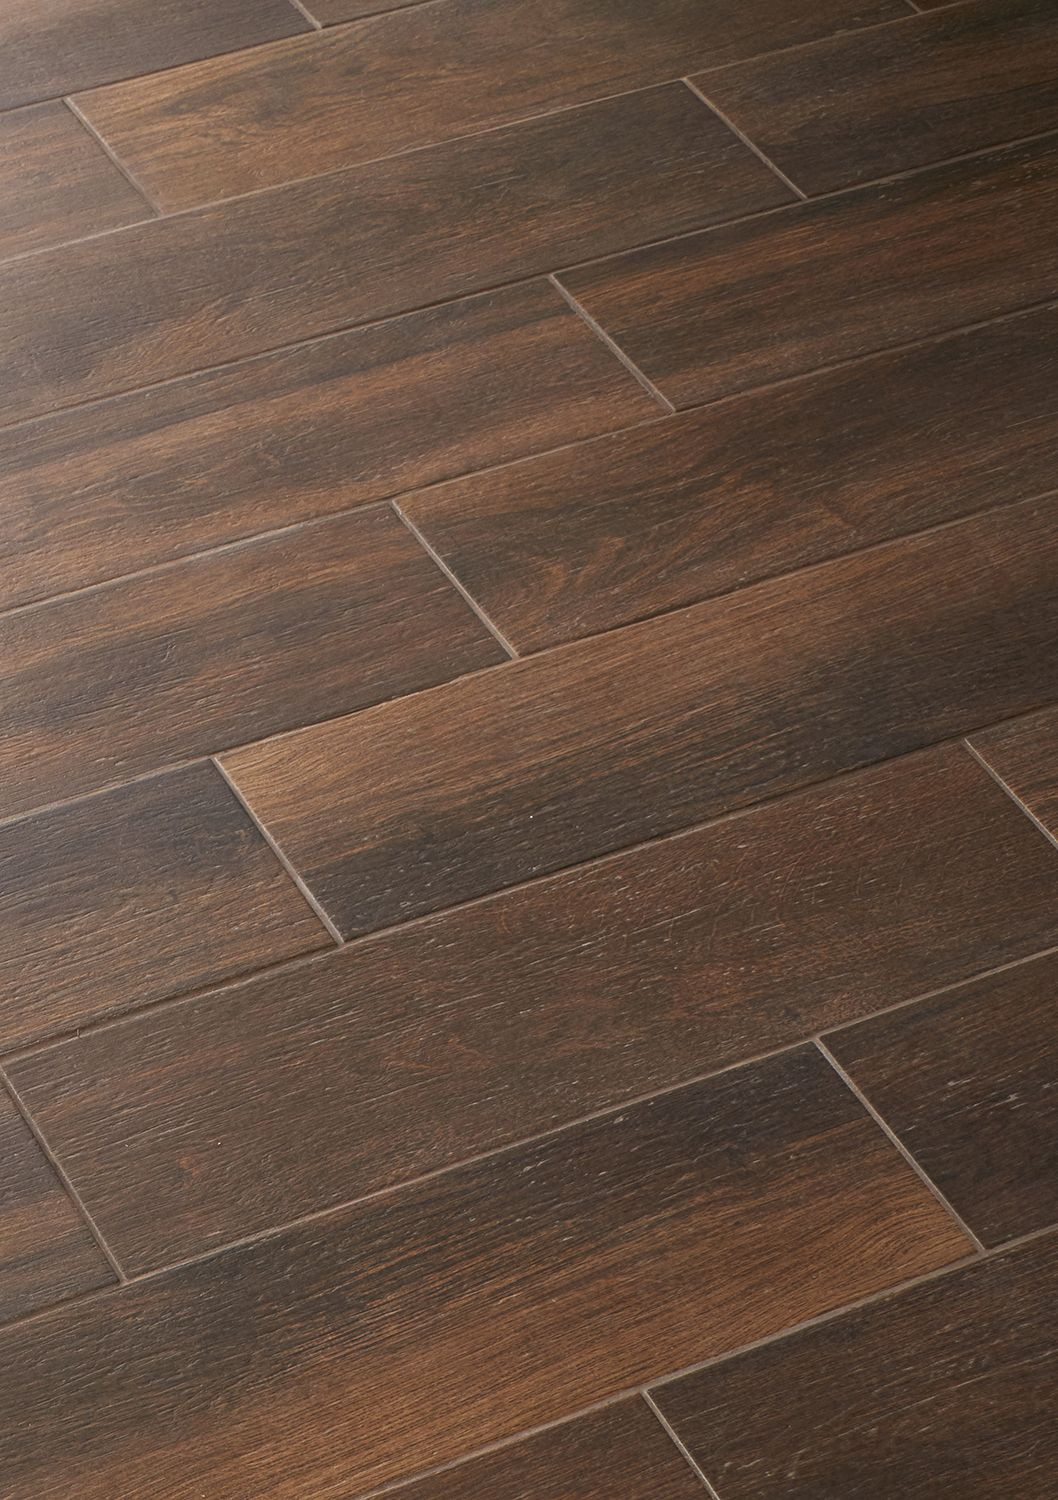 tampa hardwood floor refinishing reviews of evermore porcelain tile is daltile features slipdefense technology with regard to making it 50 more resistant than ordinary tile go ahead step fearlessly evermore is available in three colors sierra wood autumn wood shown and